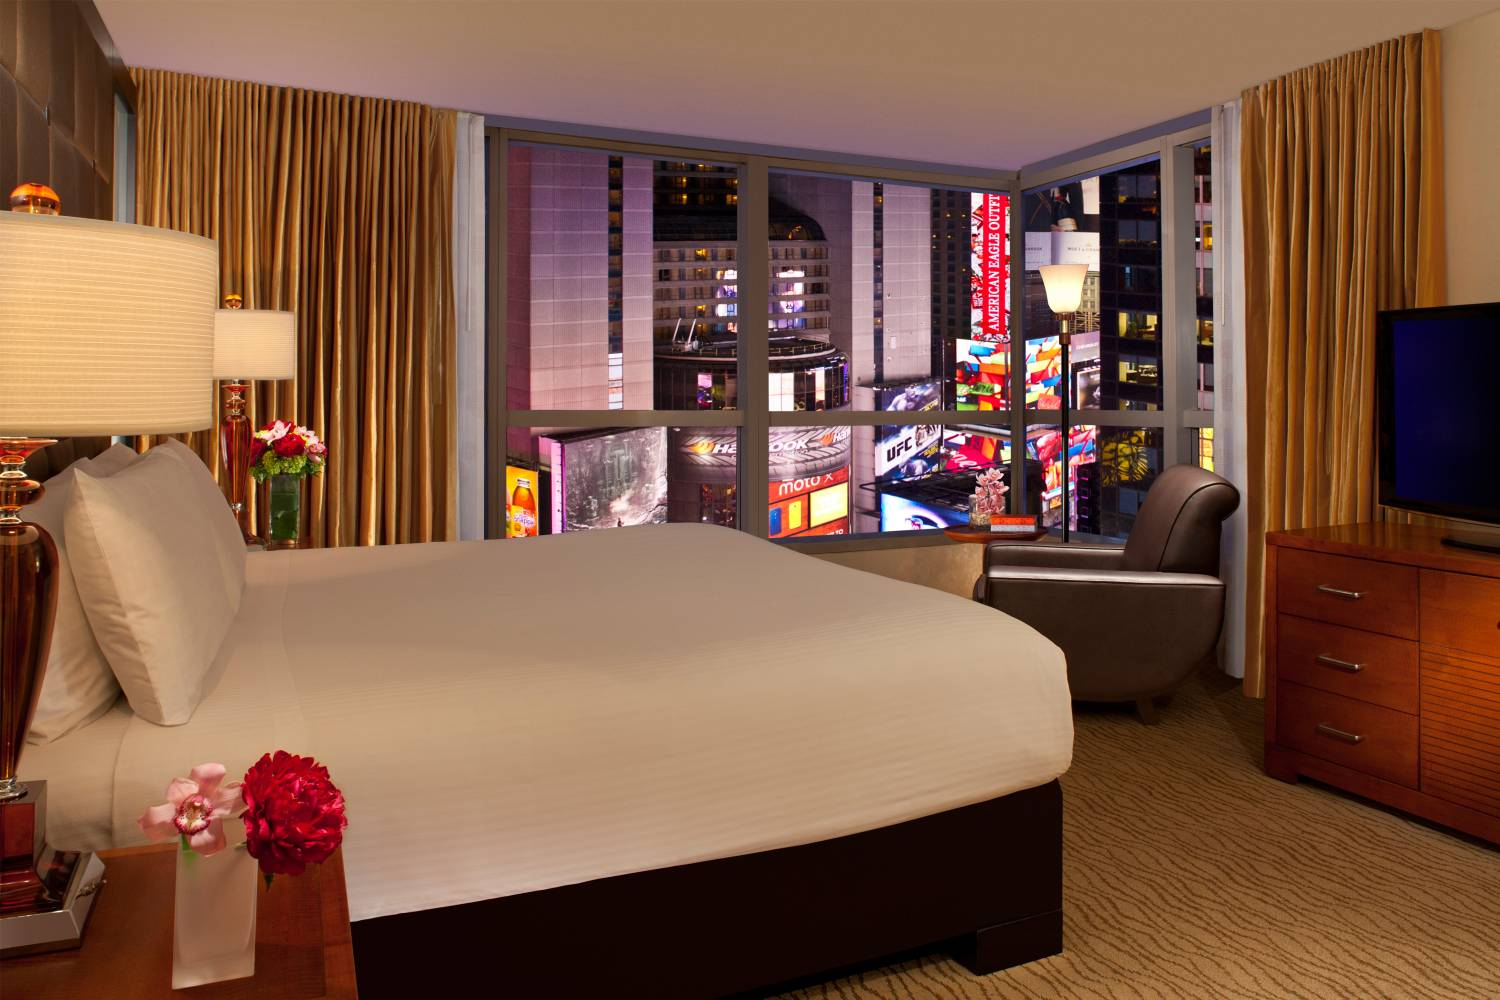 Nyc hotel rooms with a view hotels - Hotel suites new york city 2 bedrooms ...